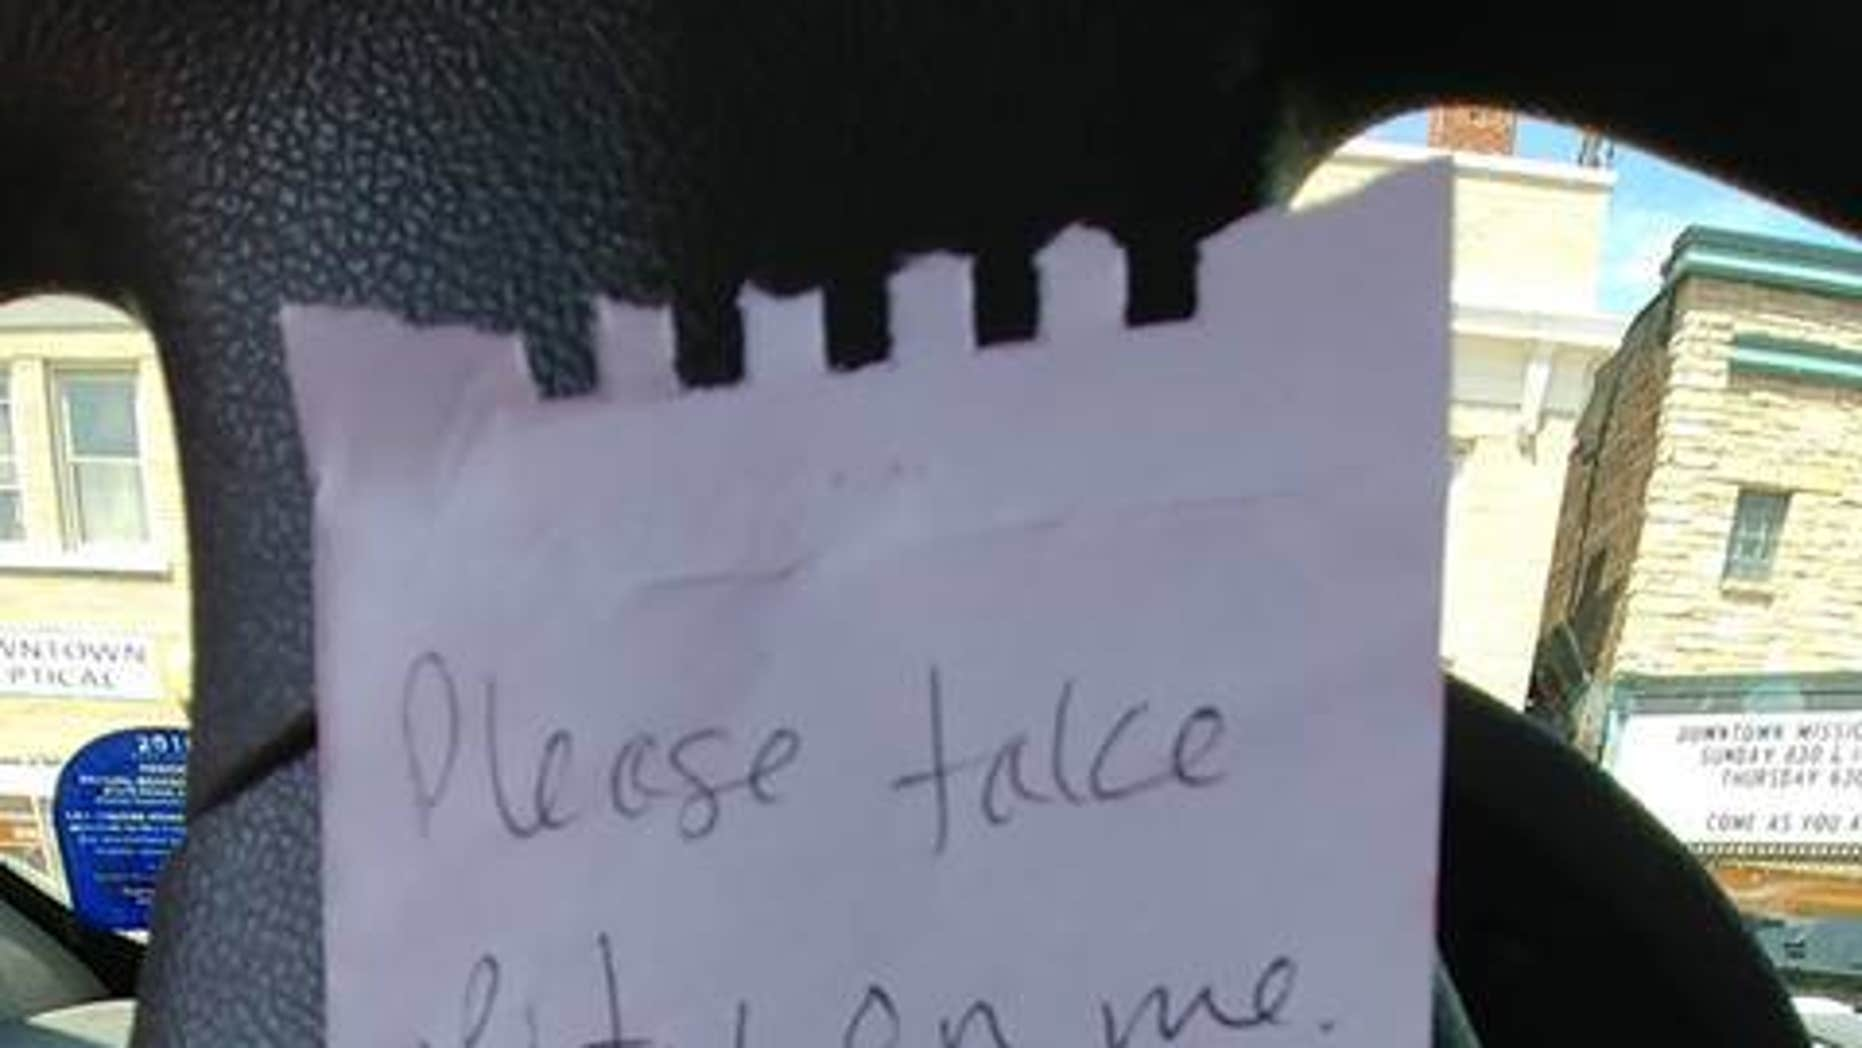 """A Wisconsin officer issued a """"pity"""" warning to a driver after finding a funny note left on the individual's car parked in an overdue meter spot. (Wausau Police Department)"""